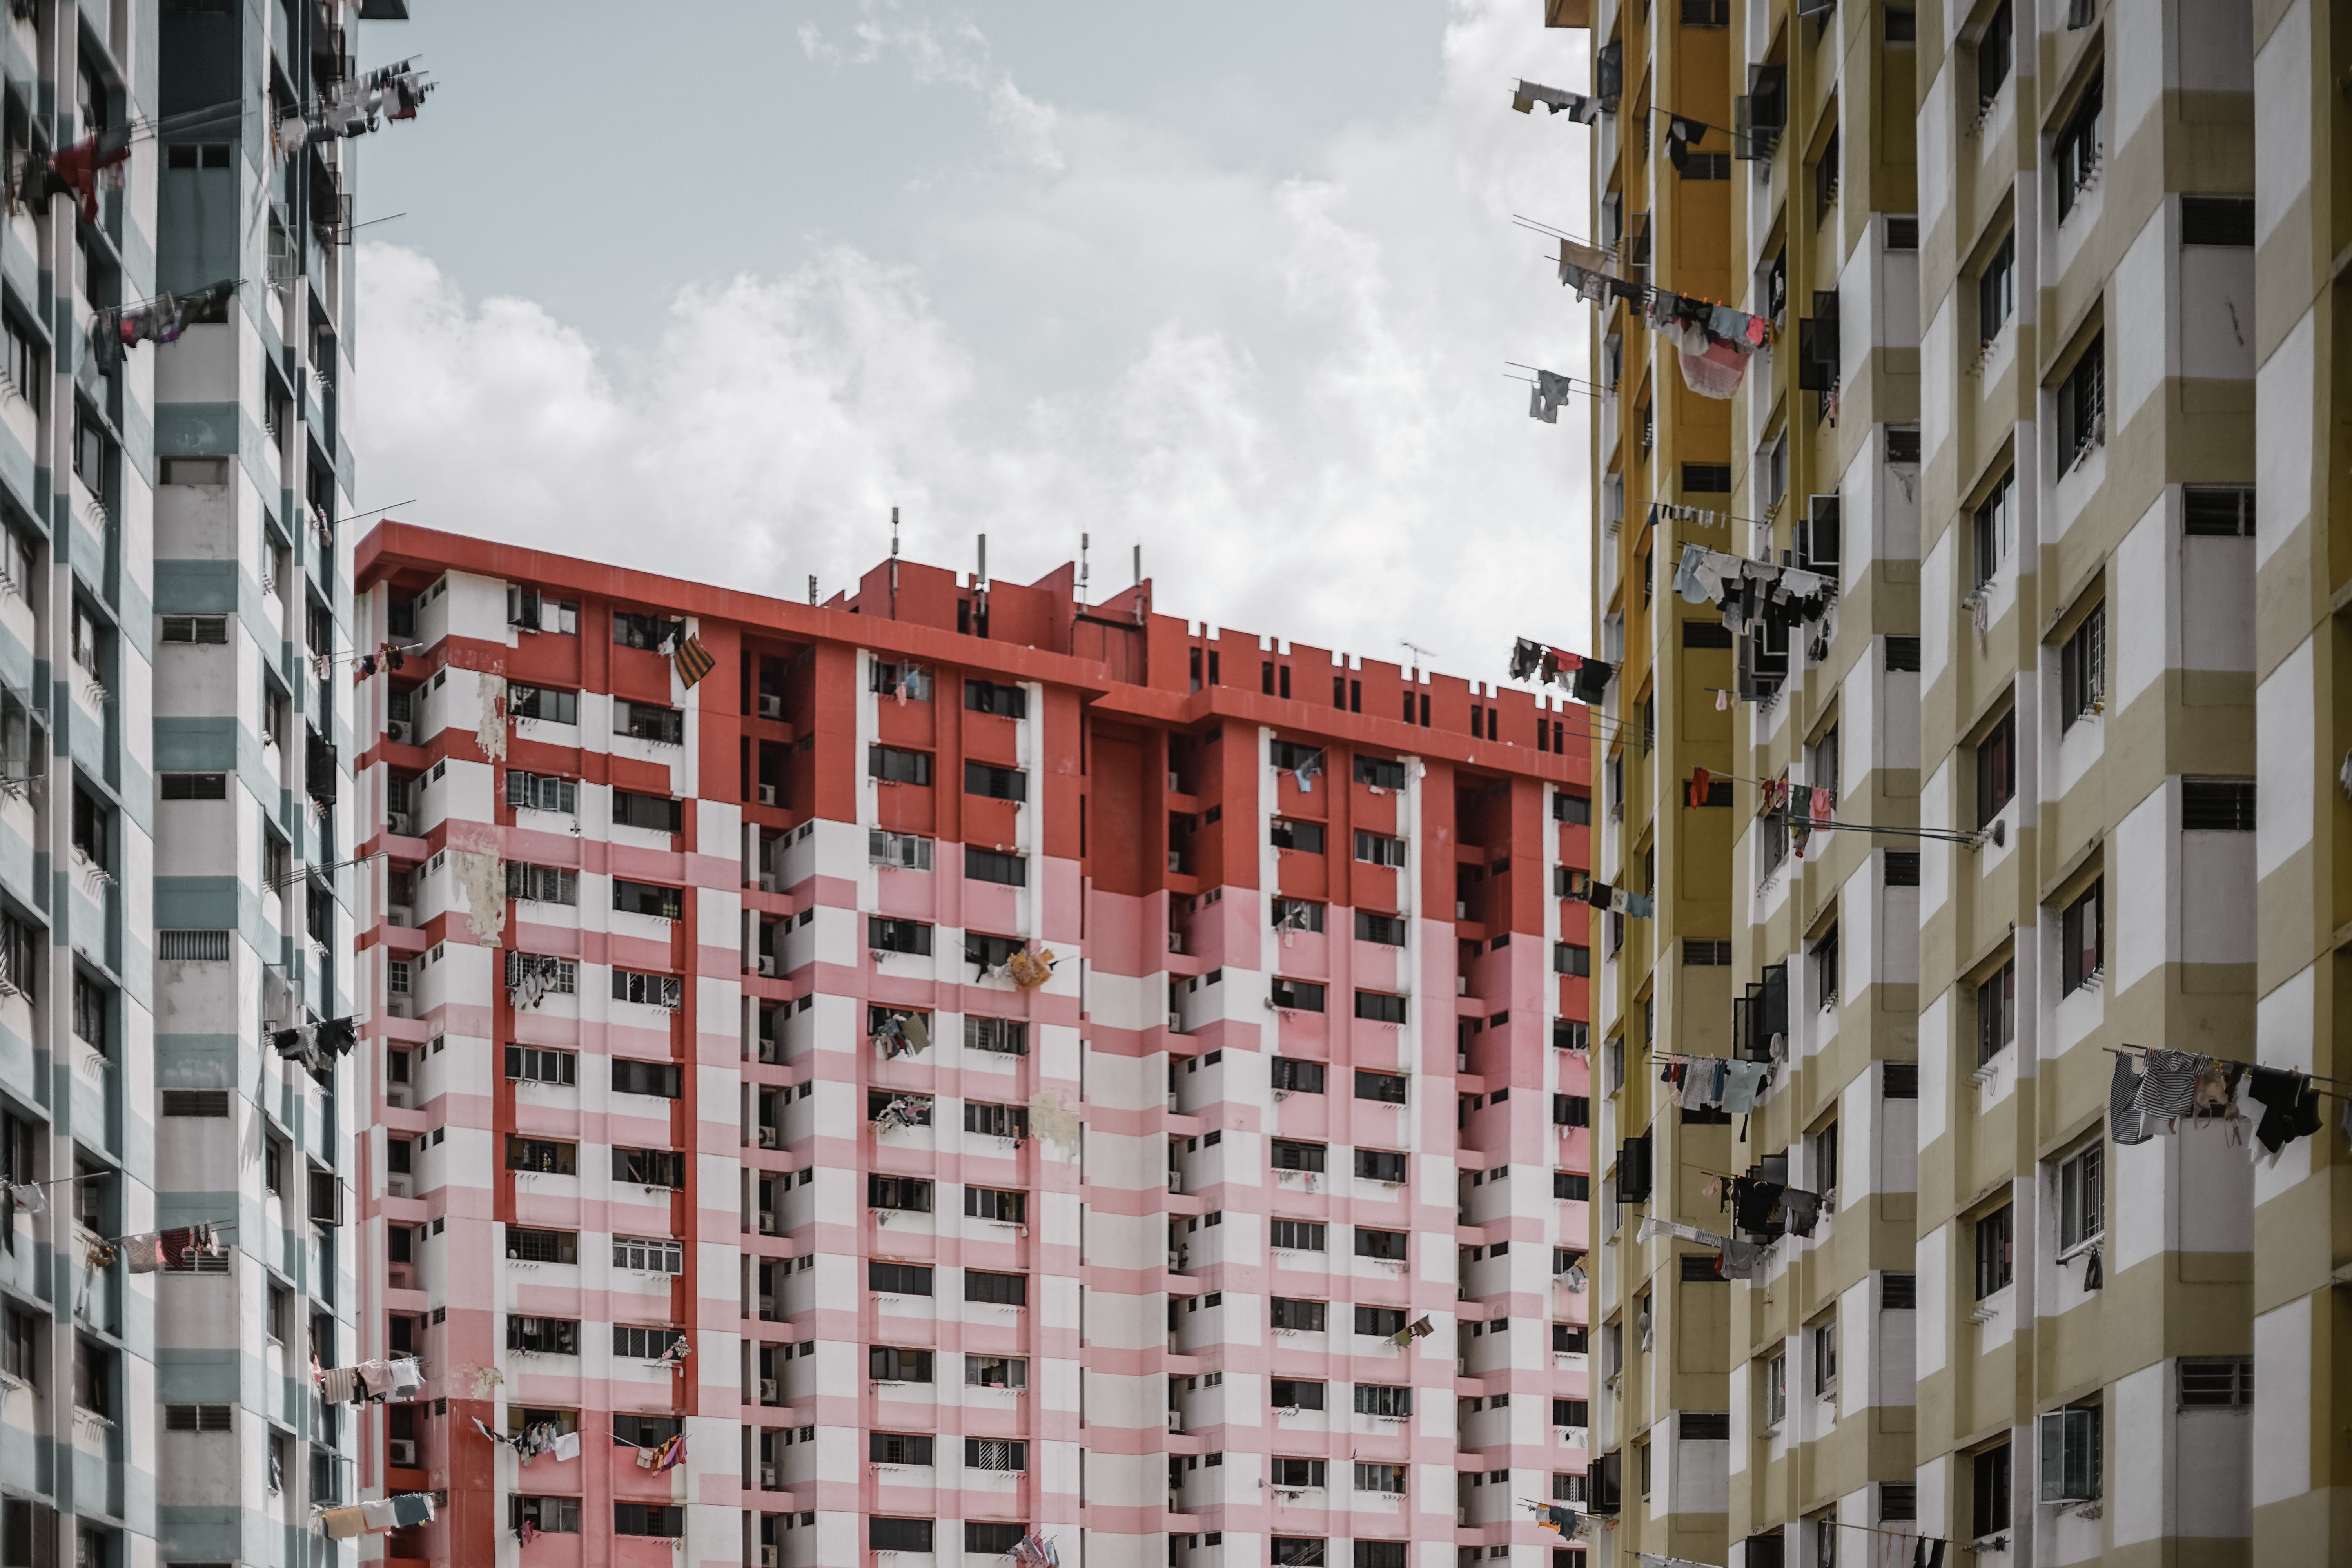 three white, red, and brown high-rise buildings